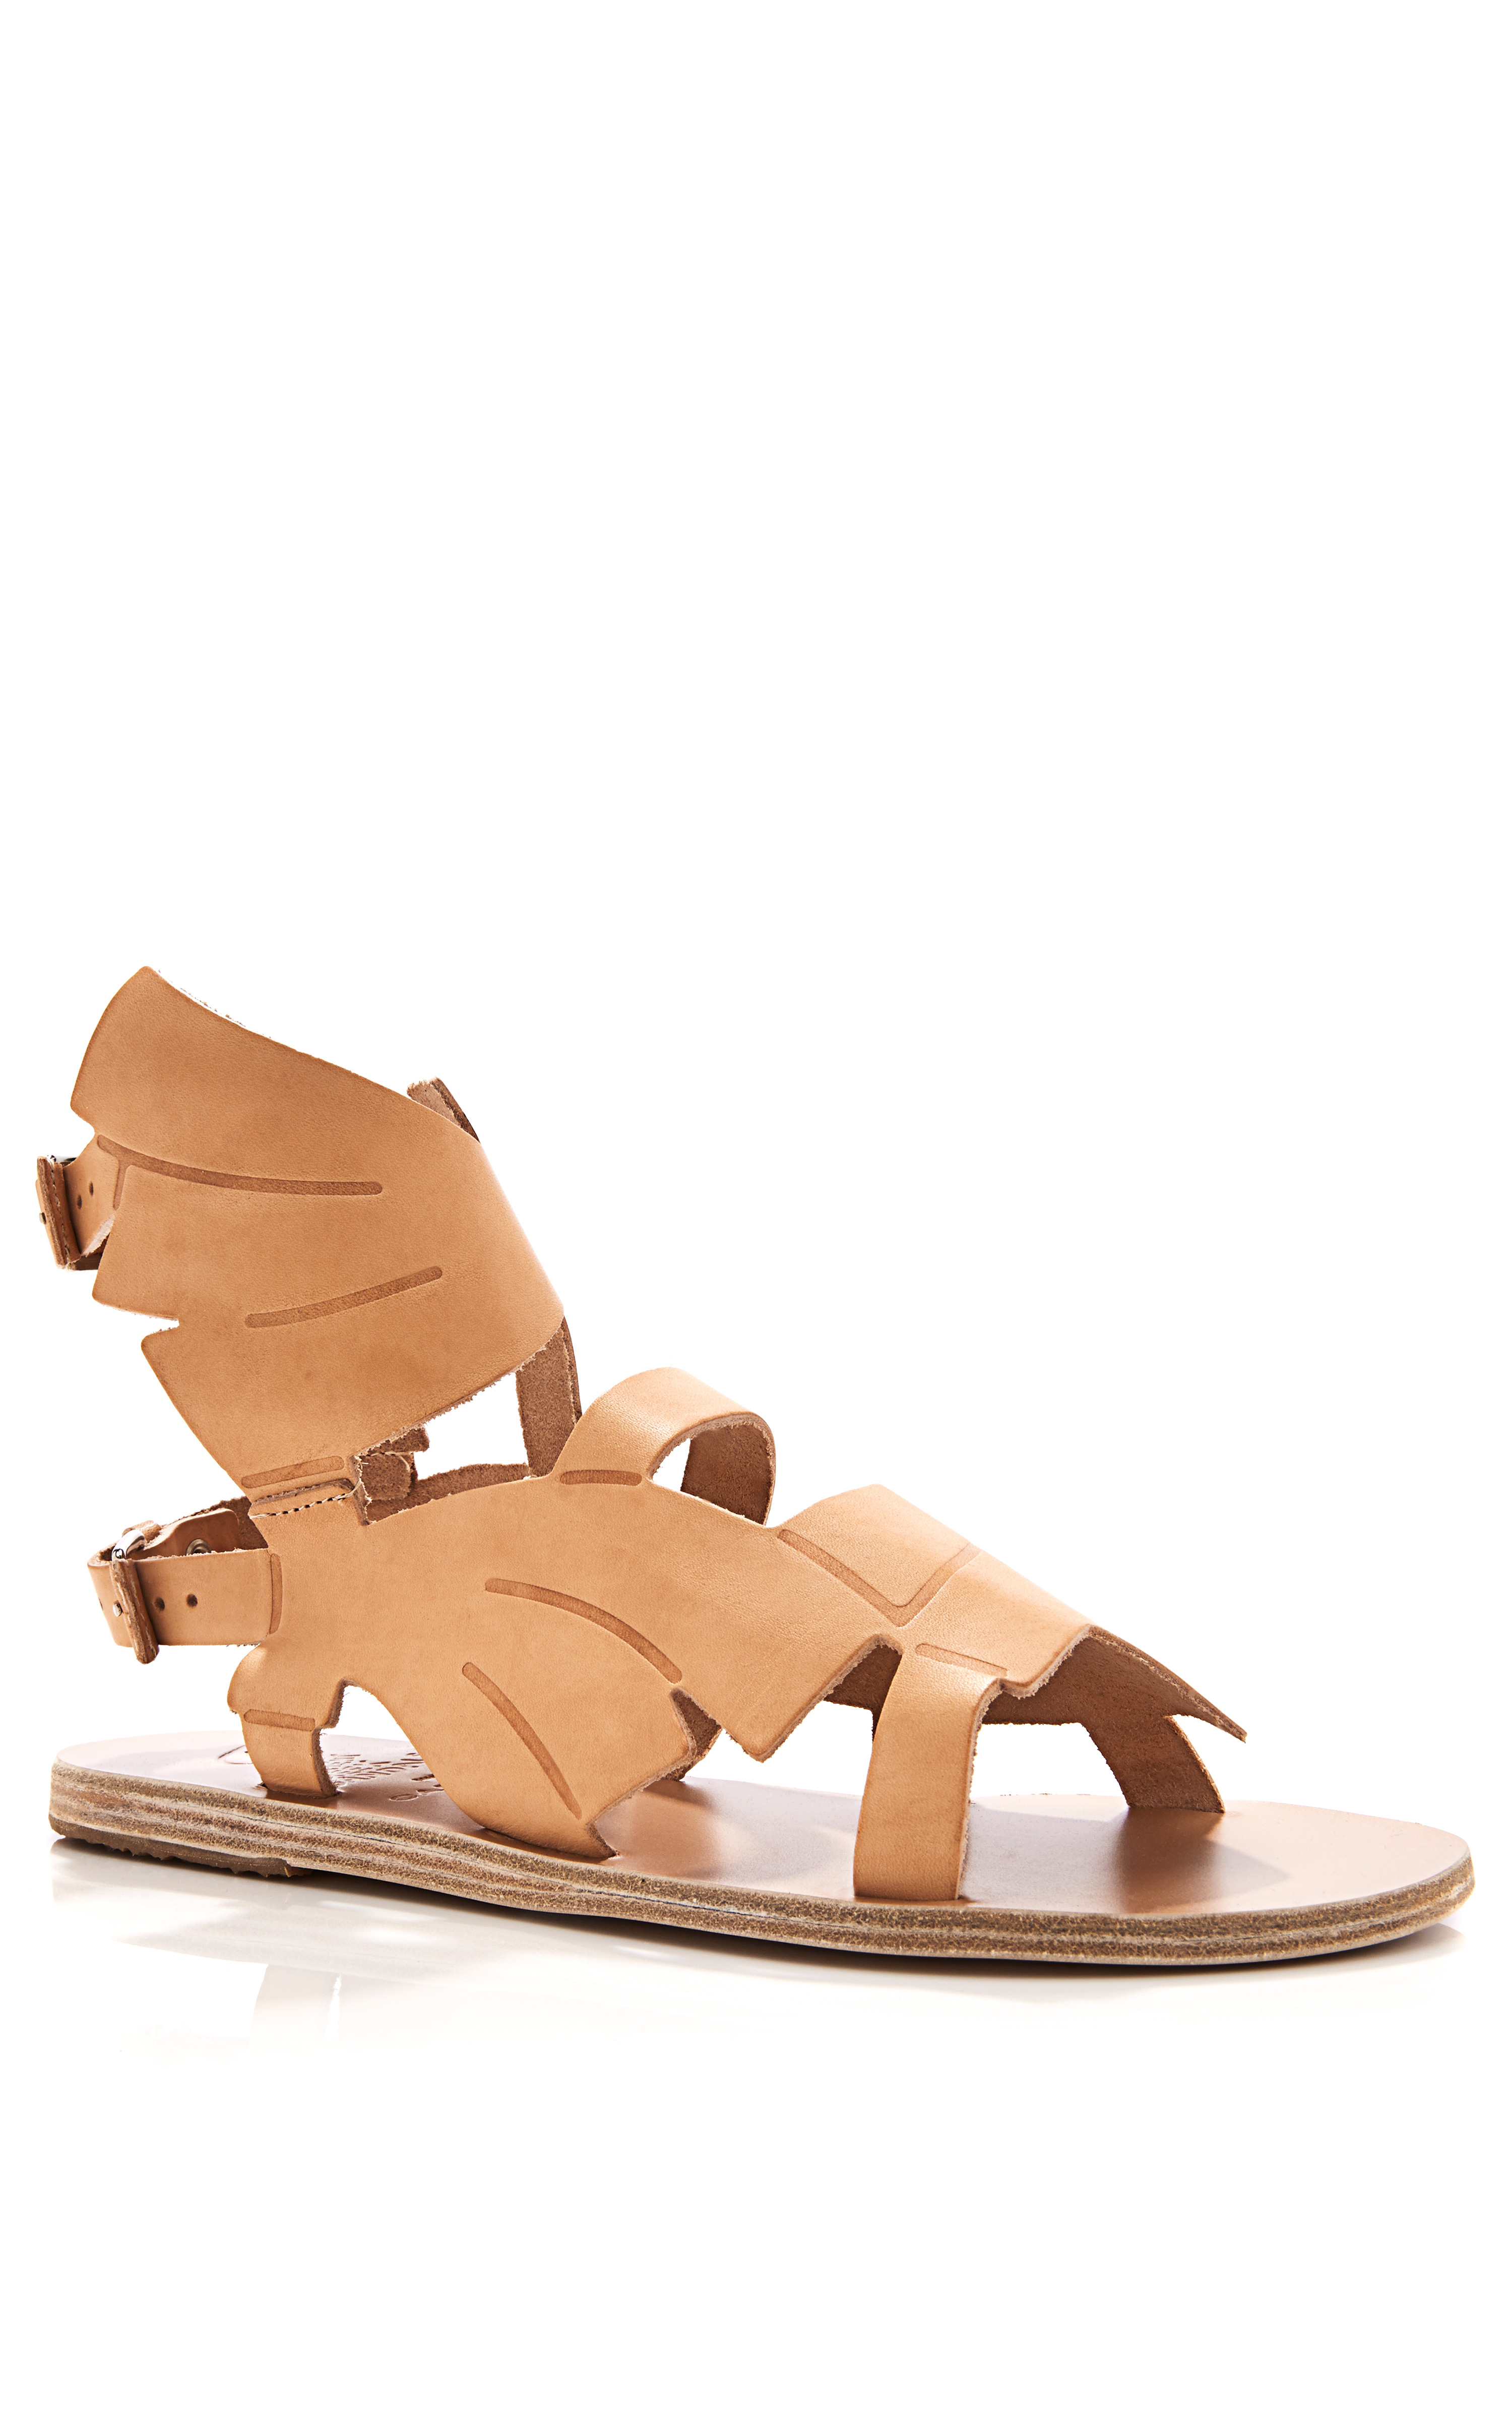 9df89ce00452 Lyst - Ancient Greek Sandals Carven Banana Leaf Winged Leather ...